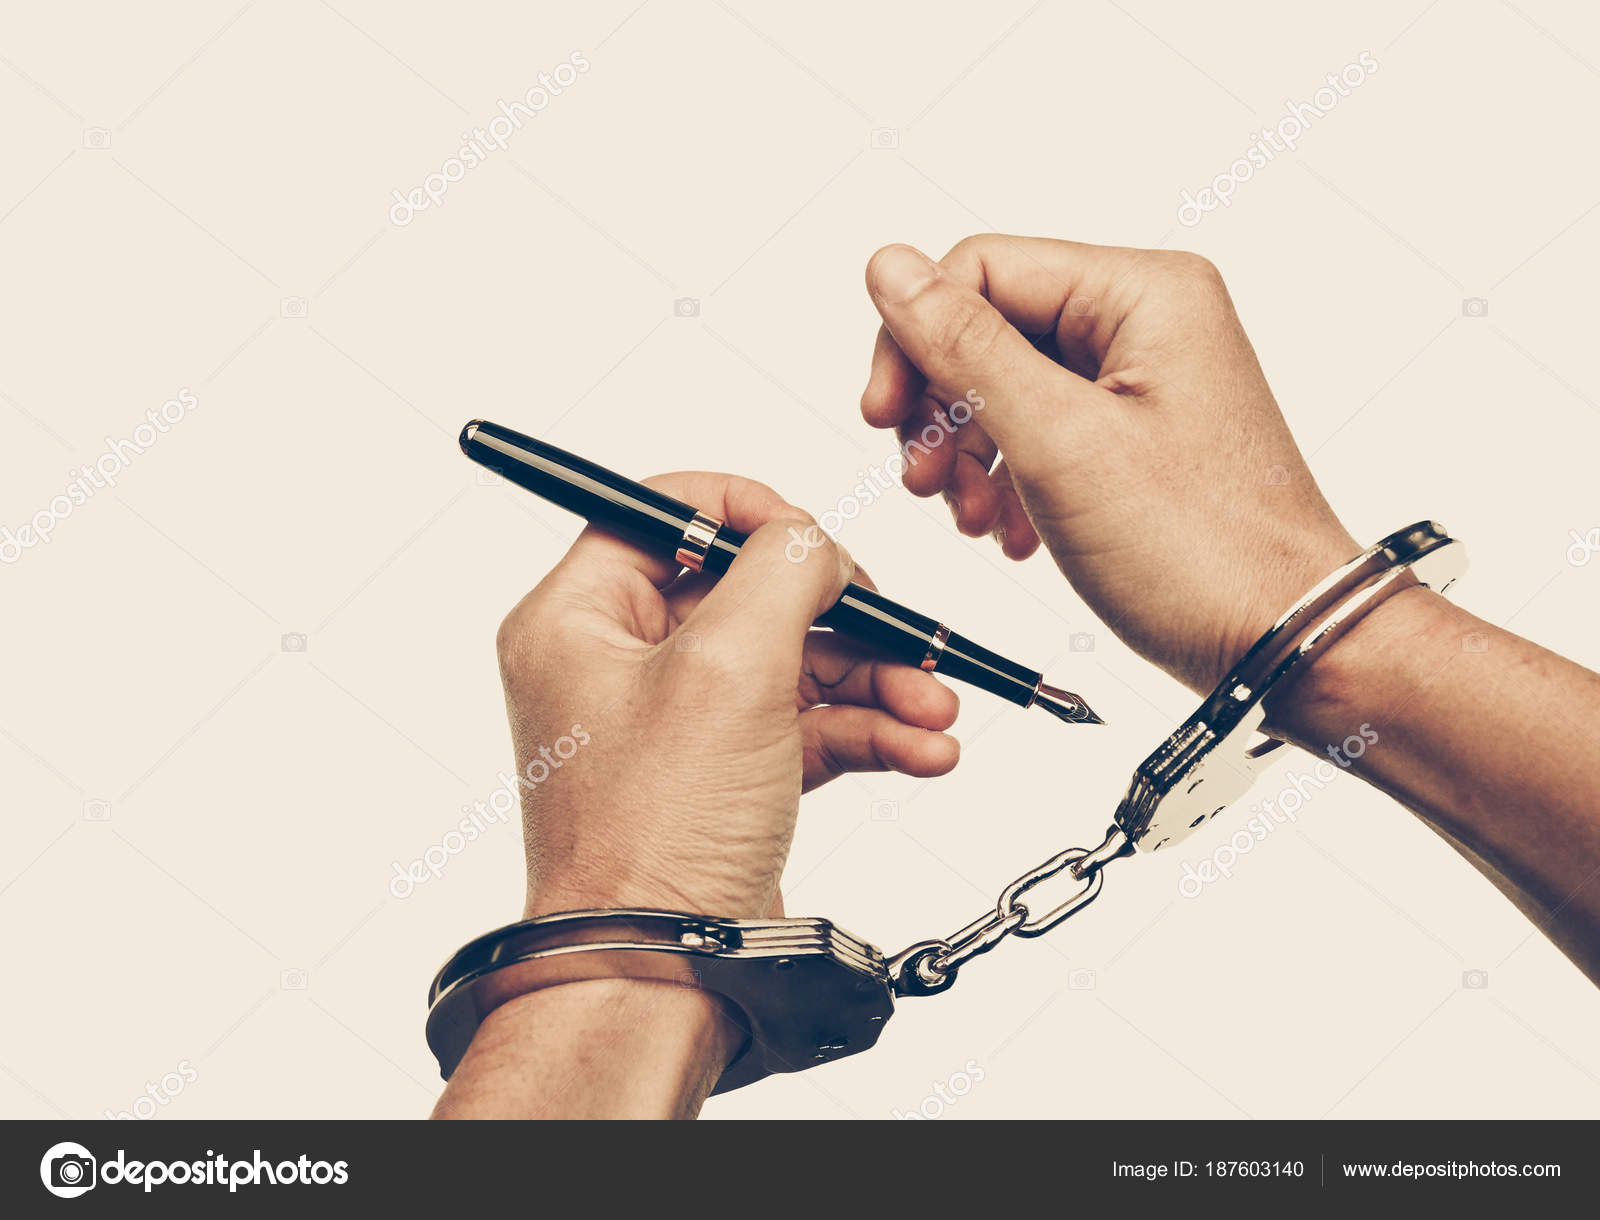 Hand Using Pen Trying Unlock Handcuffs Freedom Press Risk